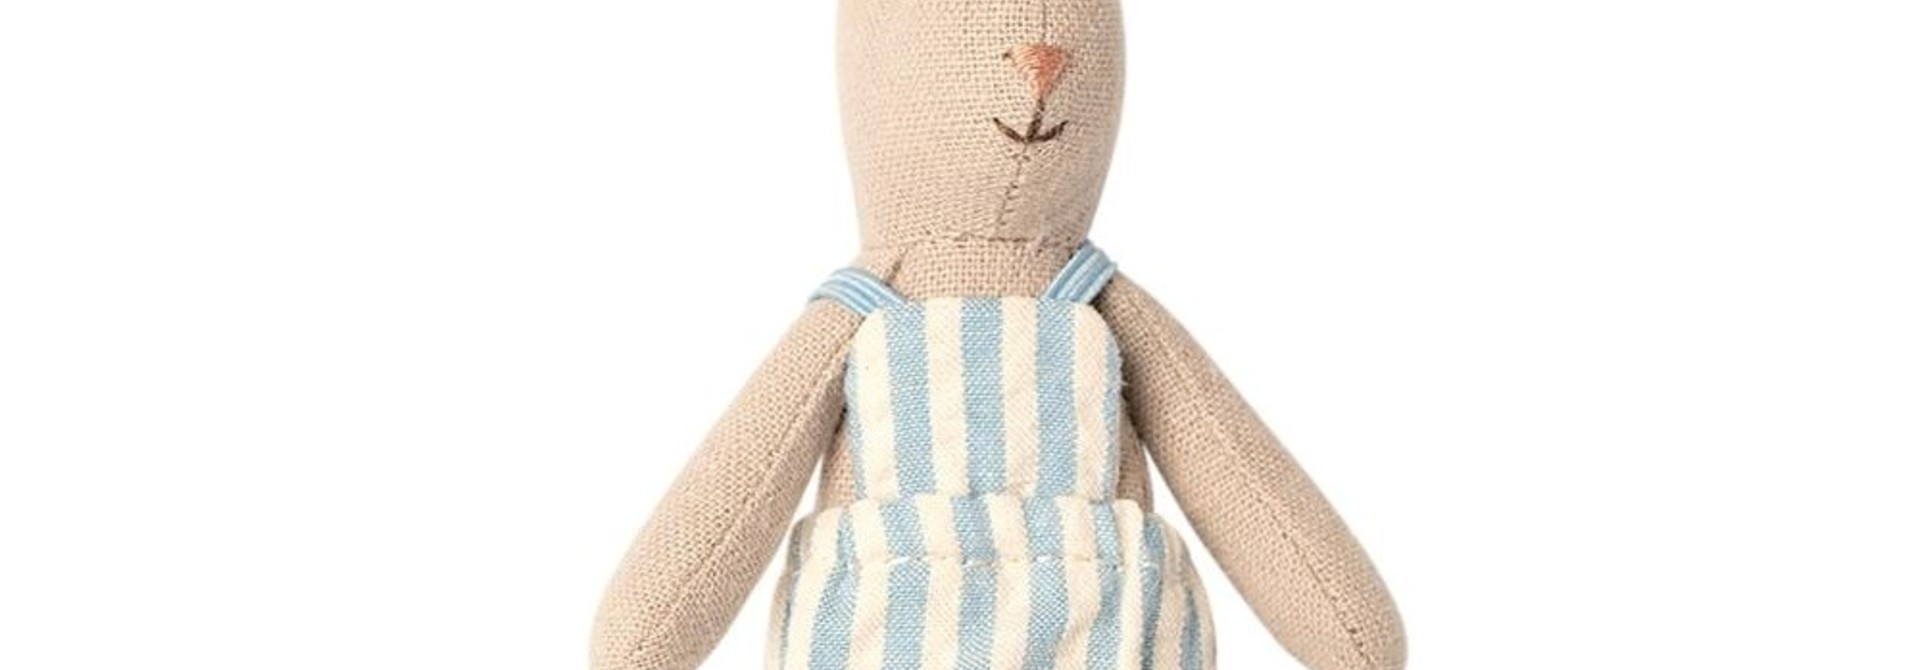 Rabbit with Blue Striped Suit - Micro 16 cm